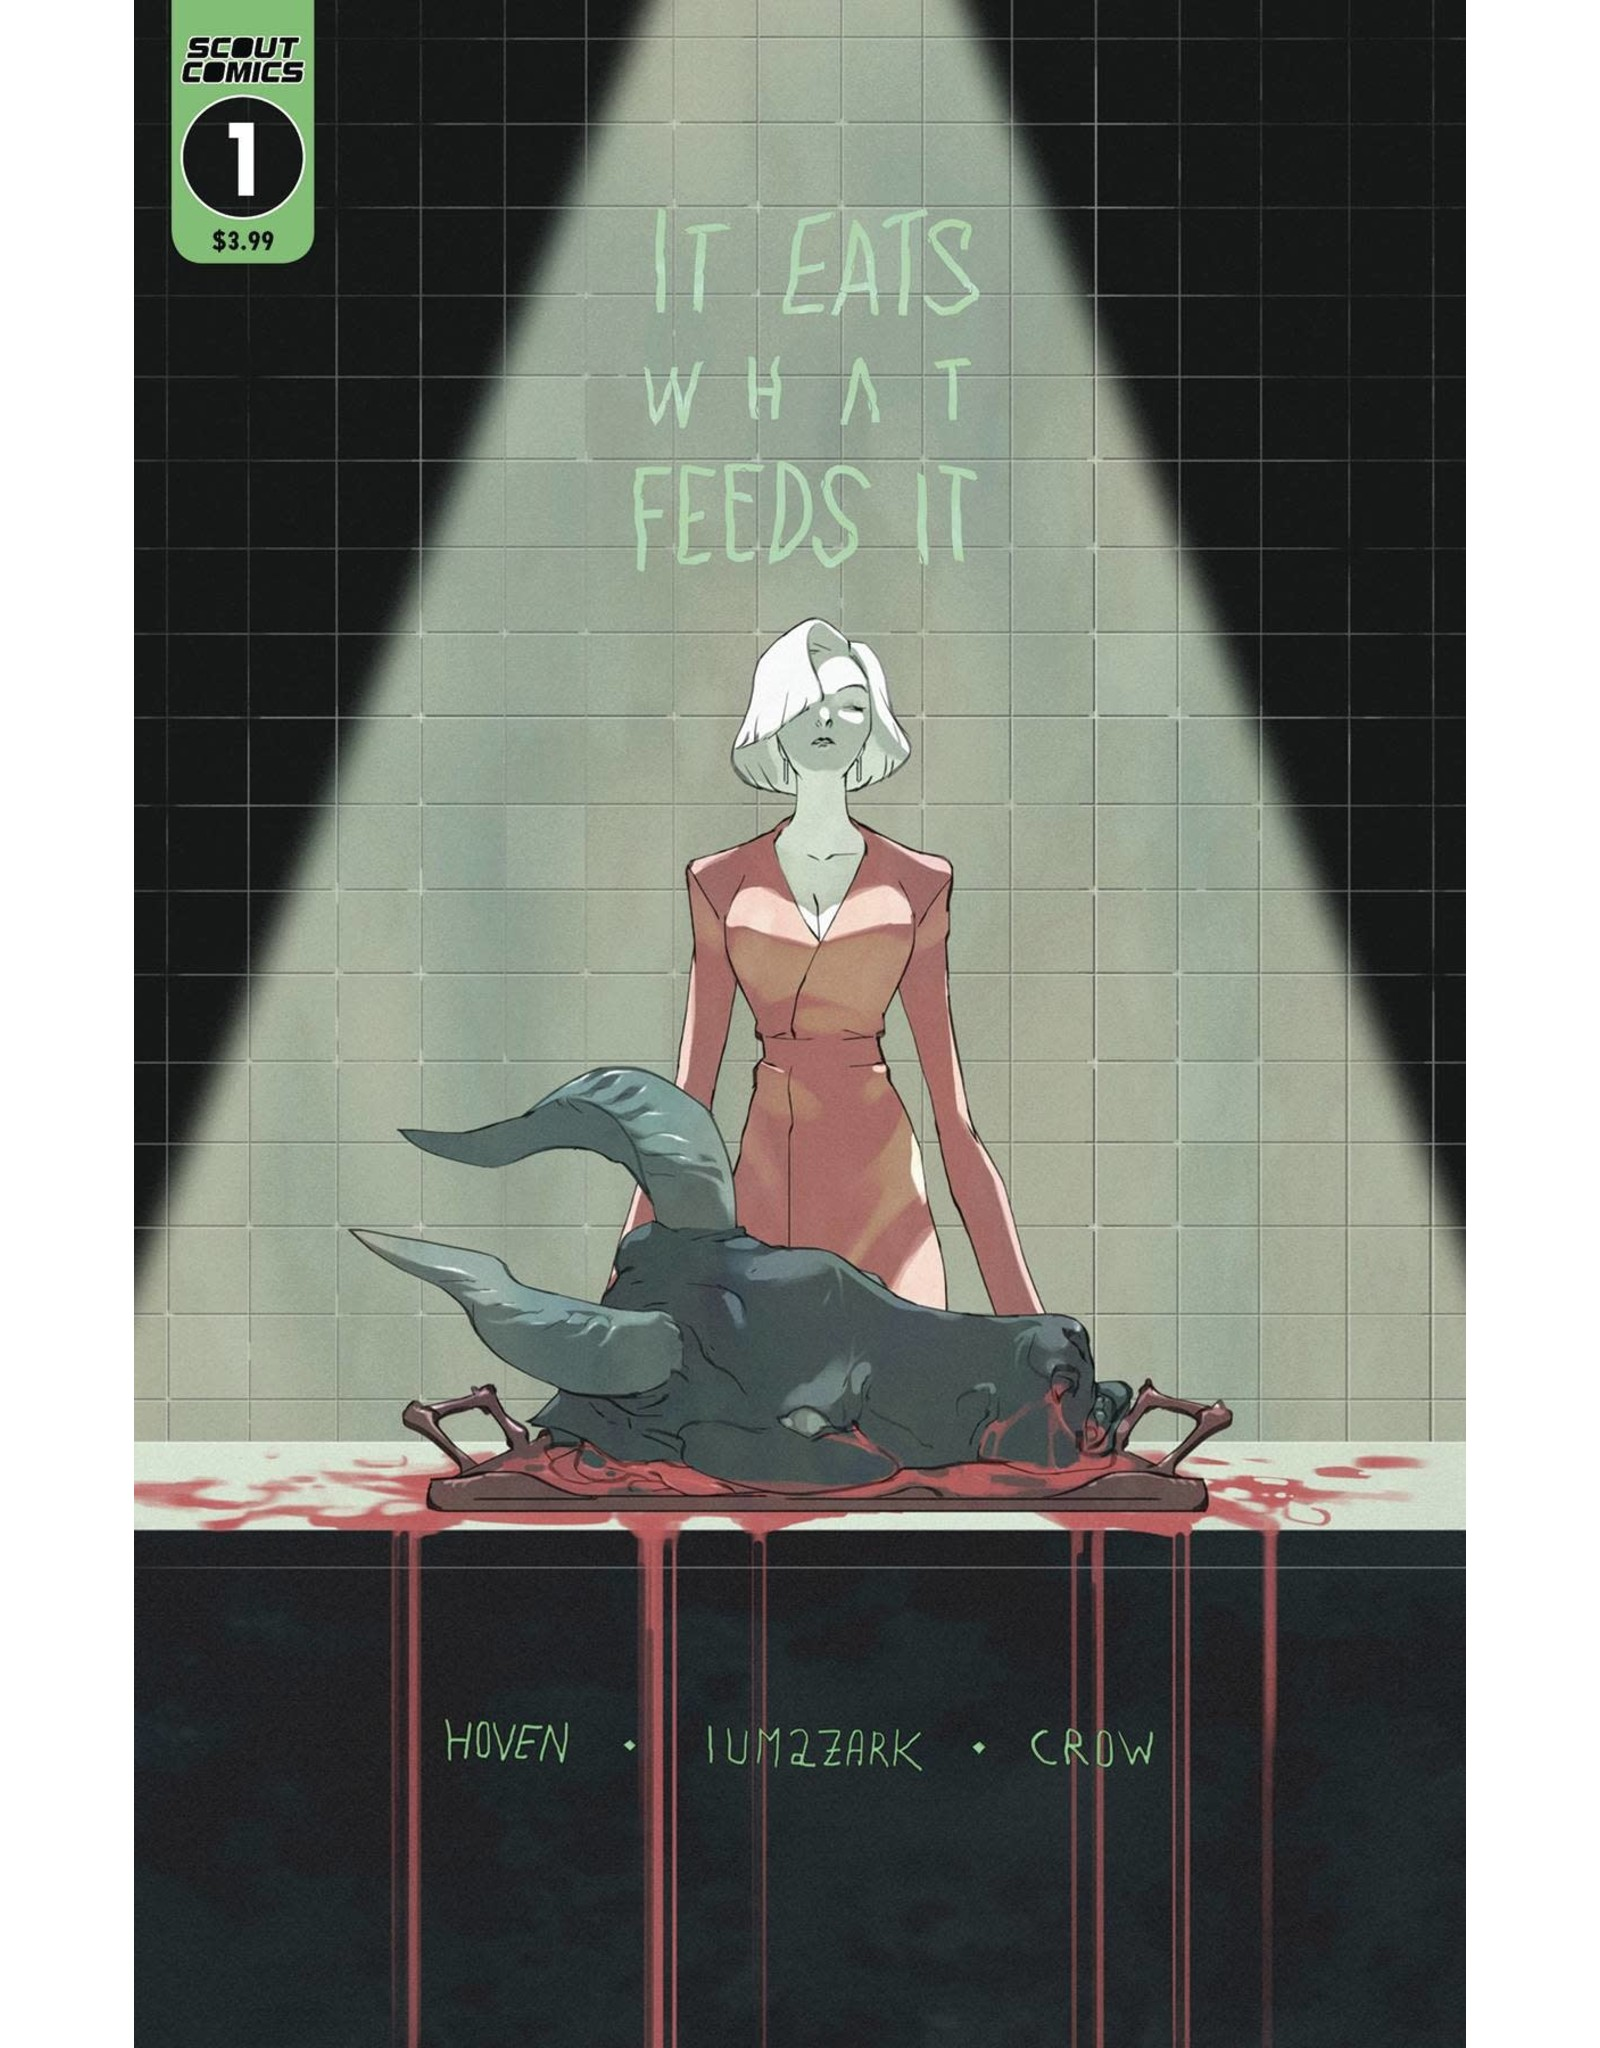 SCOUT COMICS IT EATS WHAT FEEDS IT #1 3RD PTG